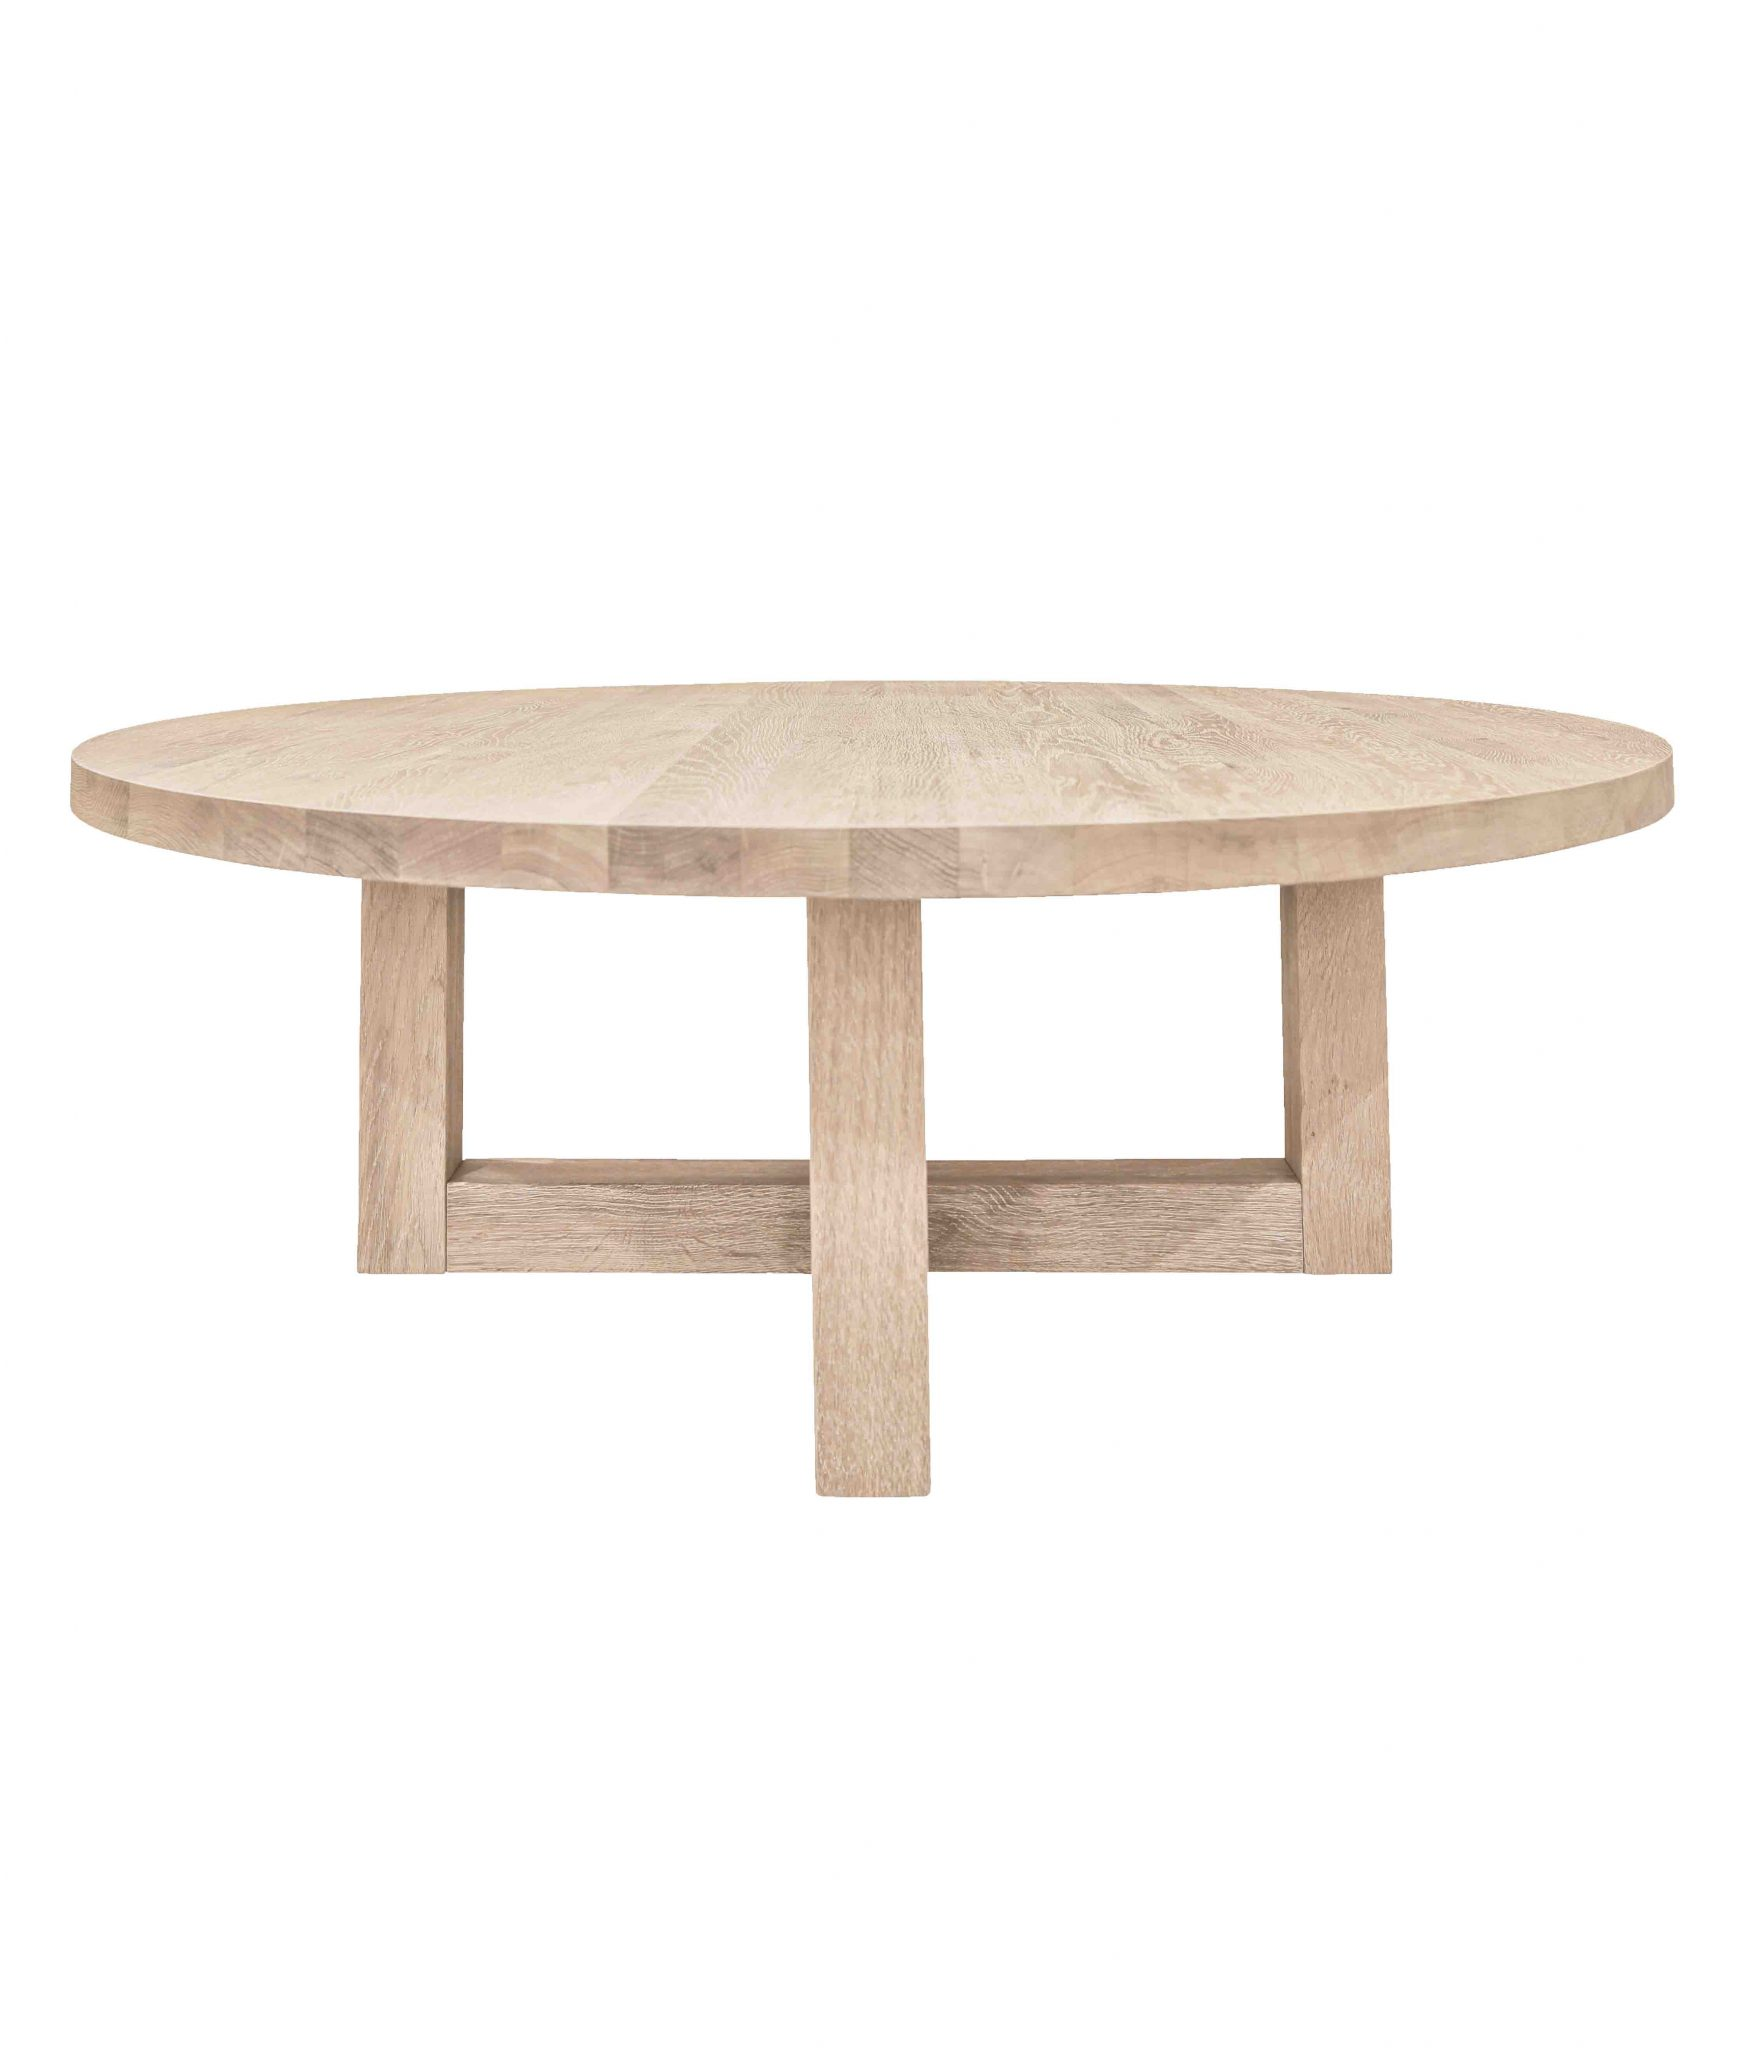 - Solid Oak Round Coffee Table |